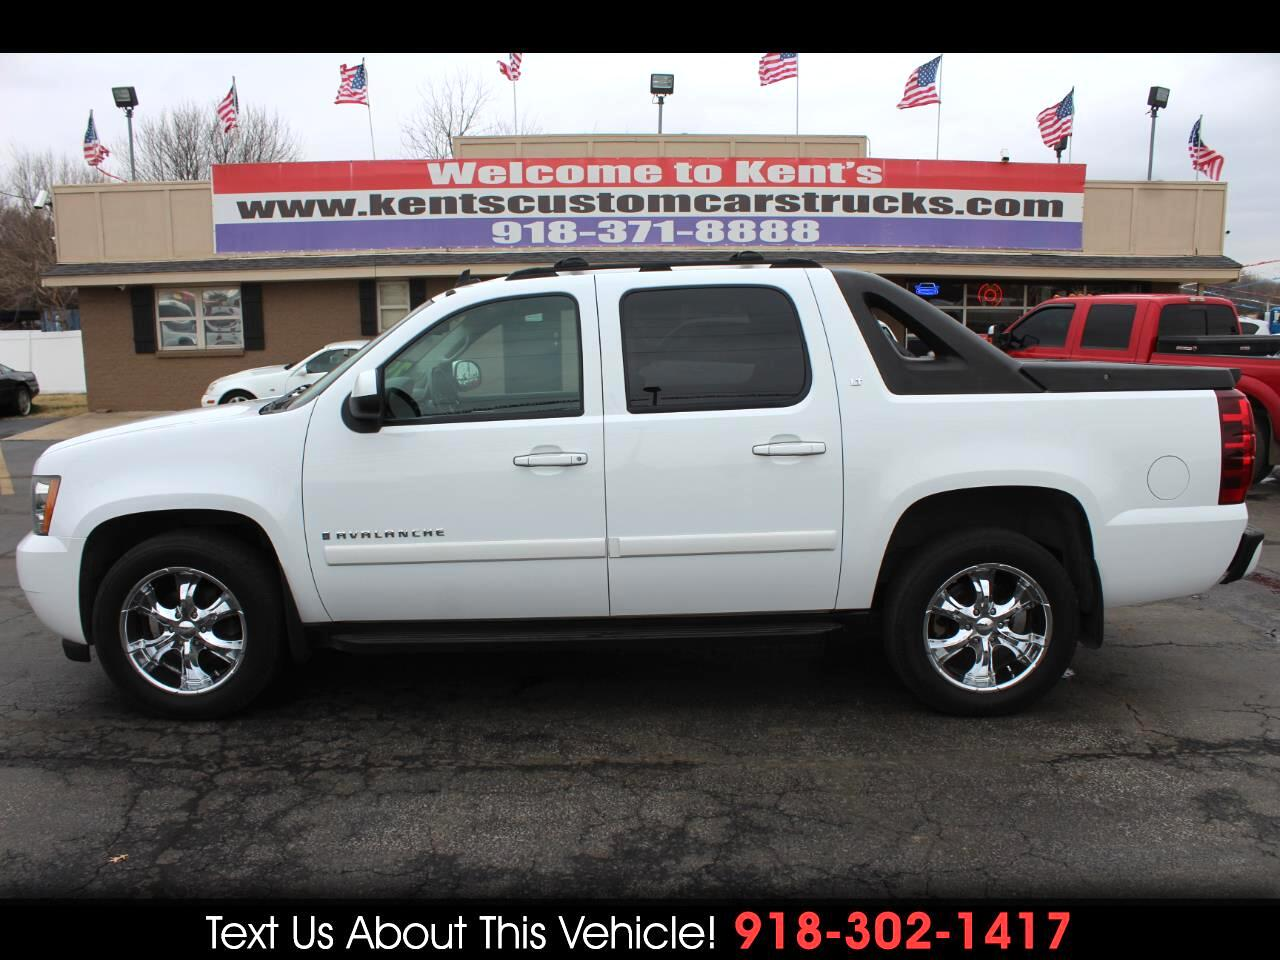 2007 Chevrolet Avalanche 1500 LT1 Crew Cab 2WD Short Bed